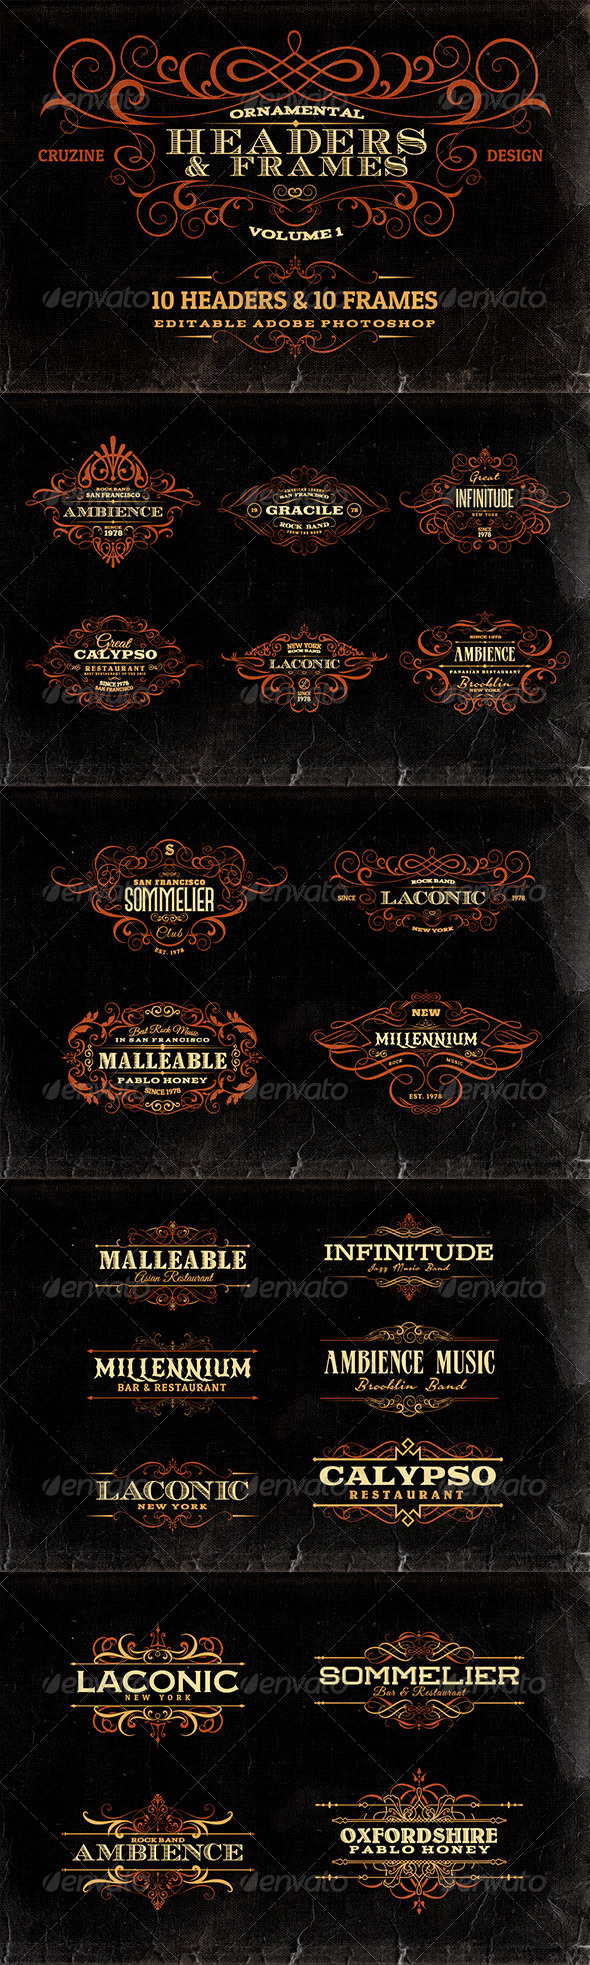 GraphicRiver Ornamental Headers & Frames v.1 6912670